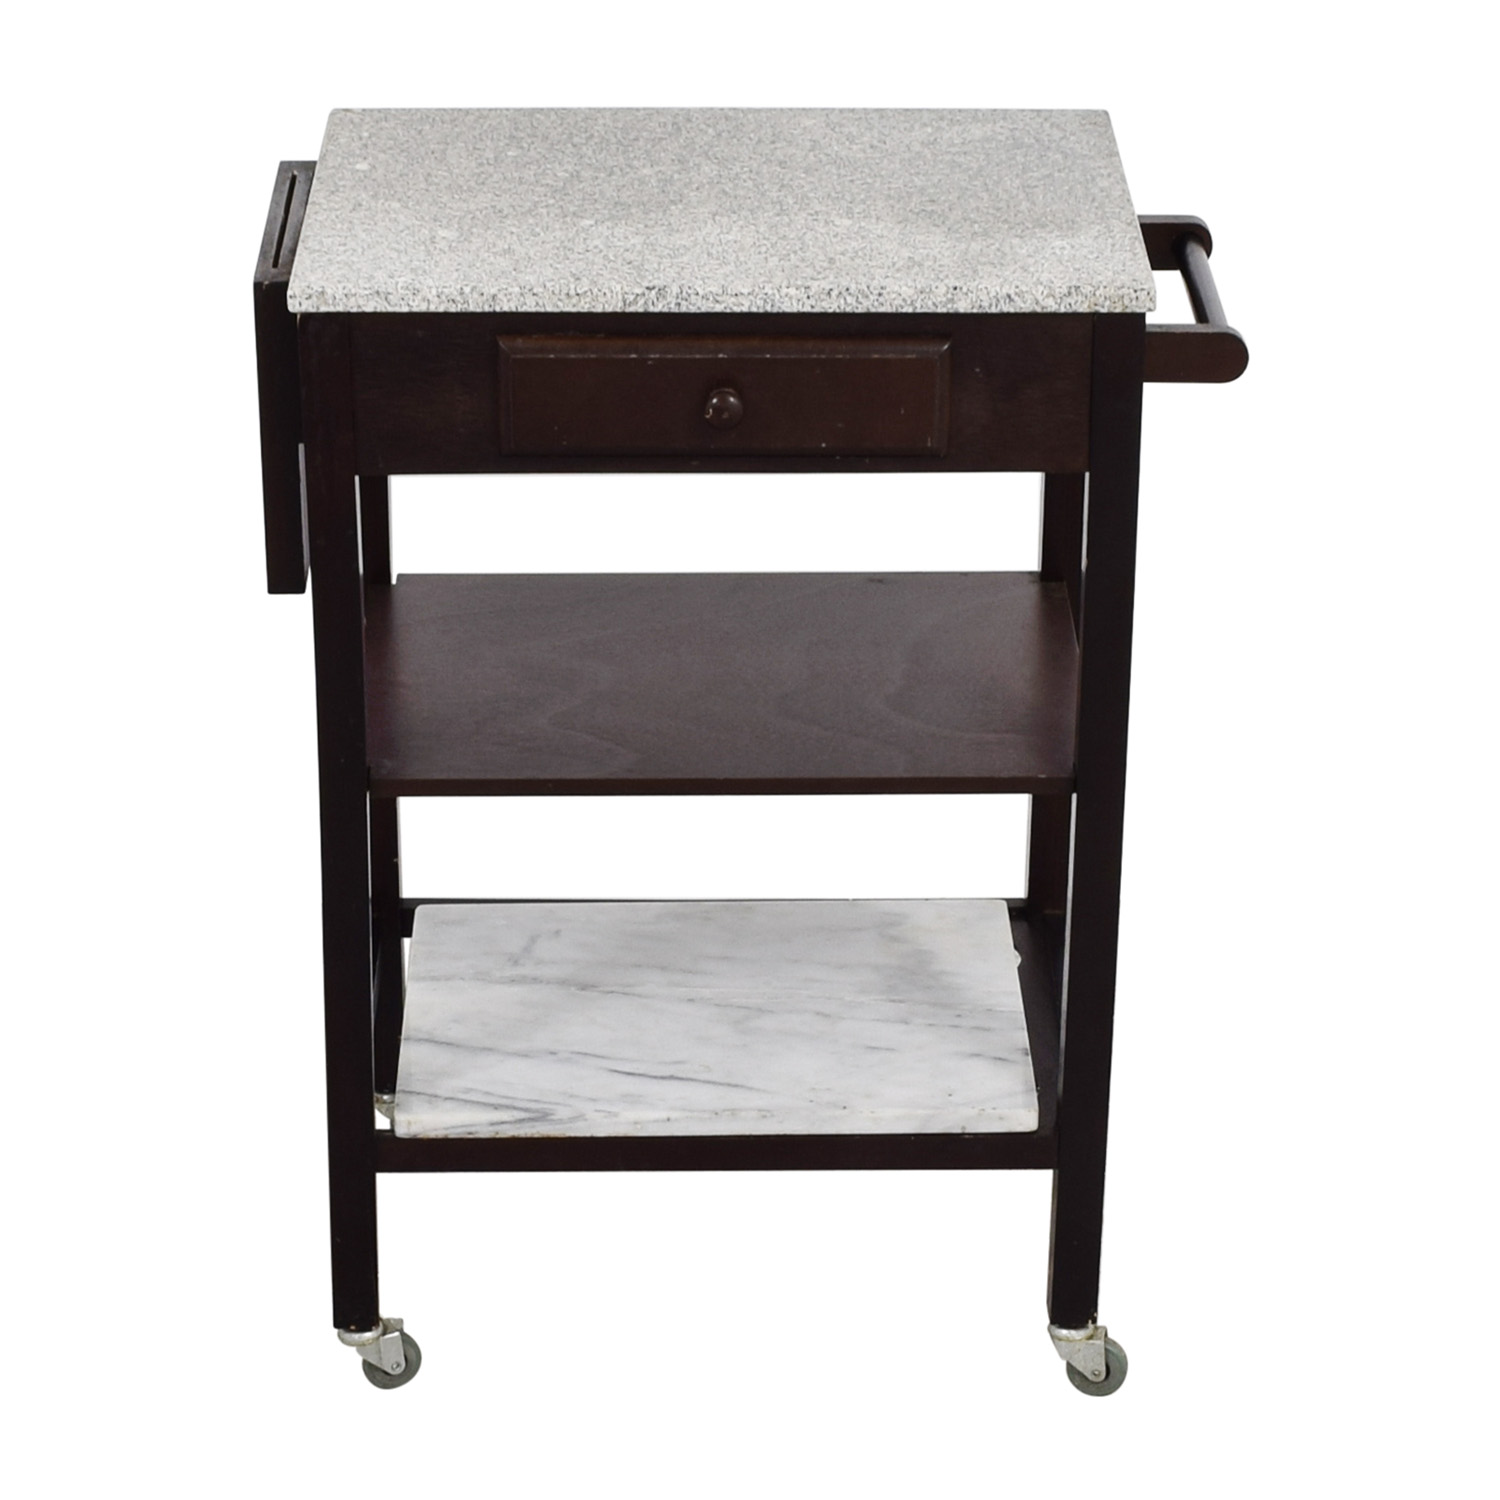 Gracious Homes Gracious Homes Kitchen Cart discount